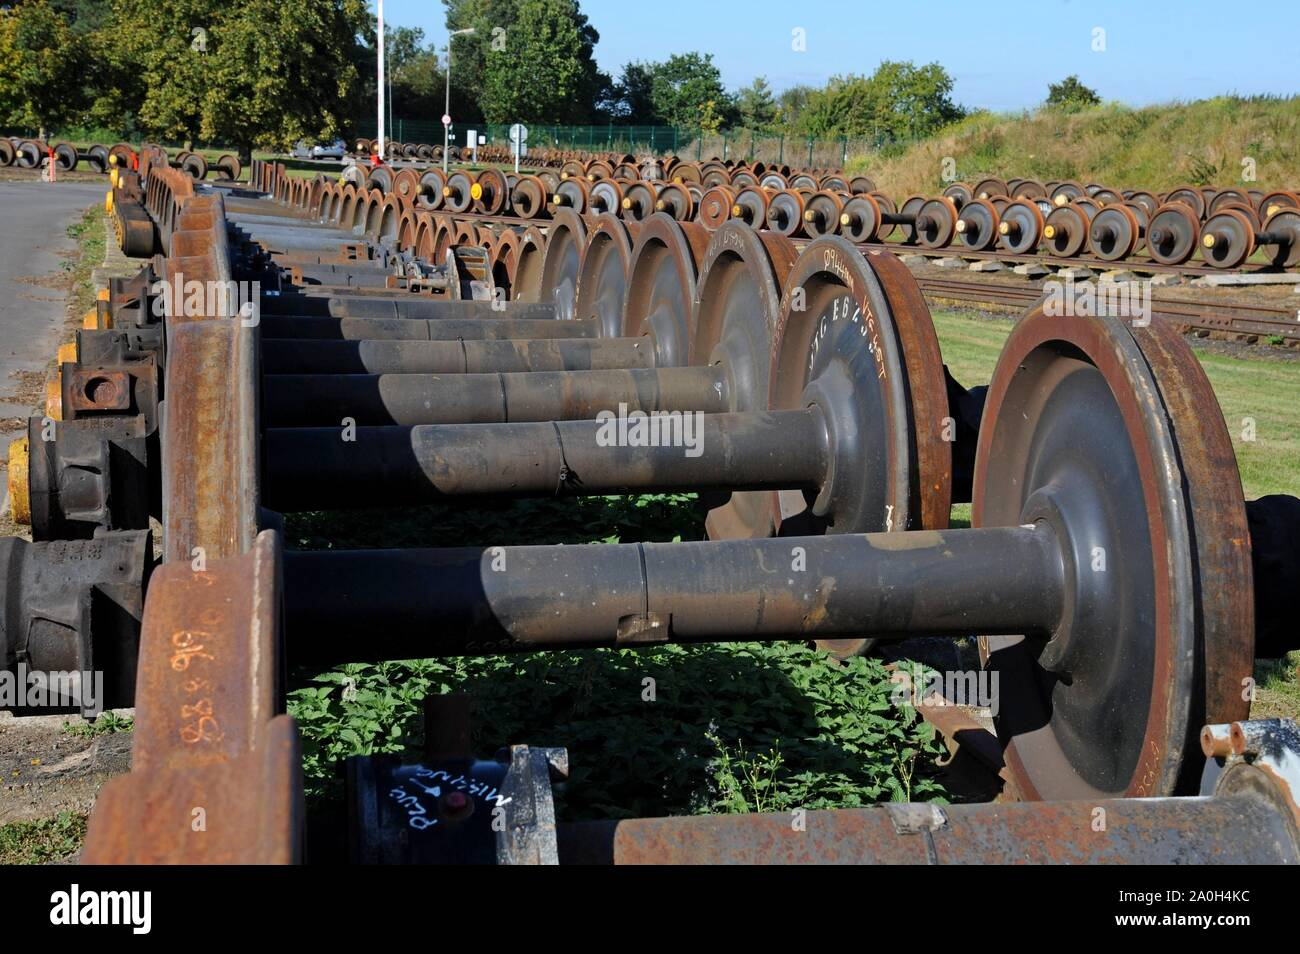 Rows of spare wheelsets for DMU trains and coaches lined up in storage at Quinton Rail Tech Centre Stock Photo